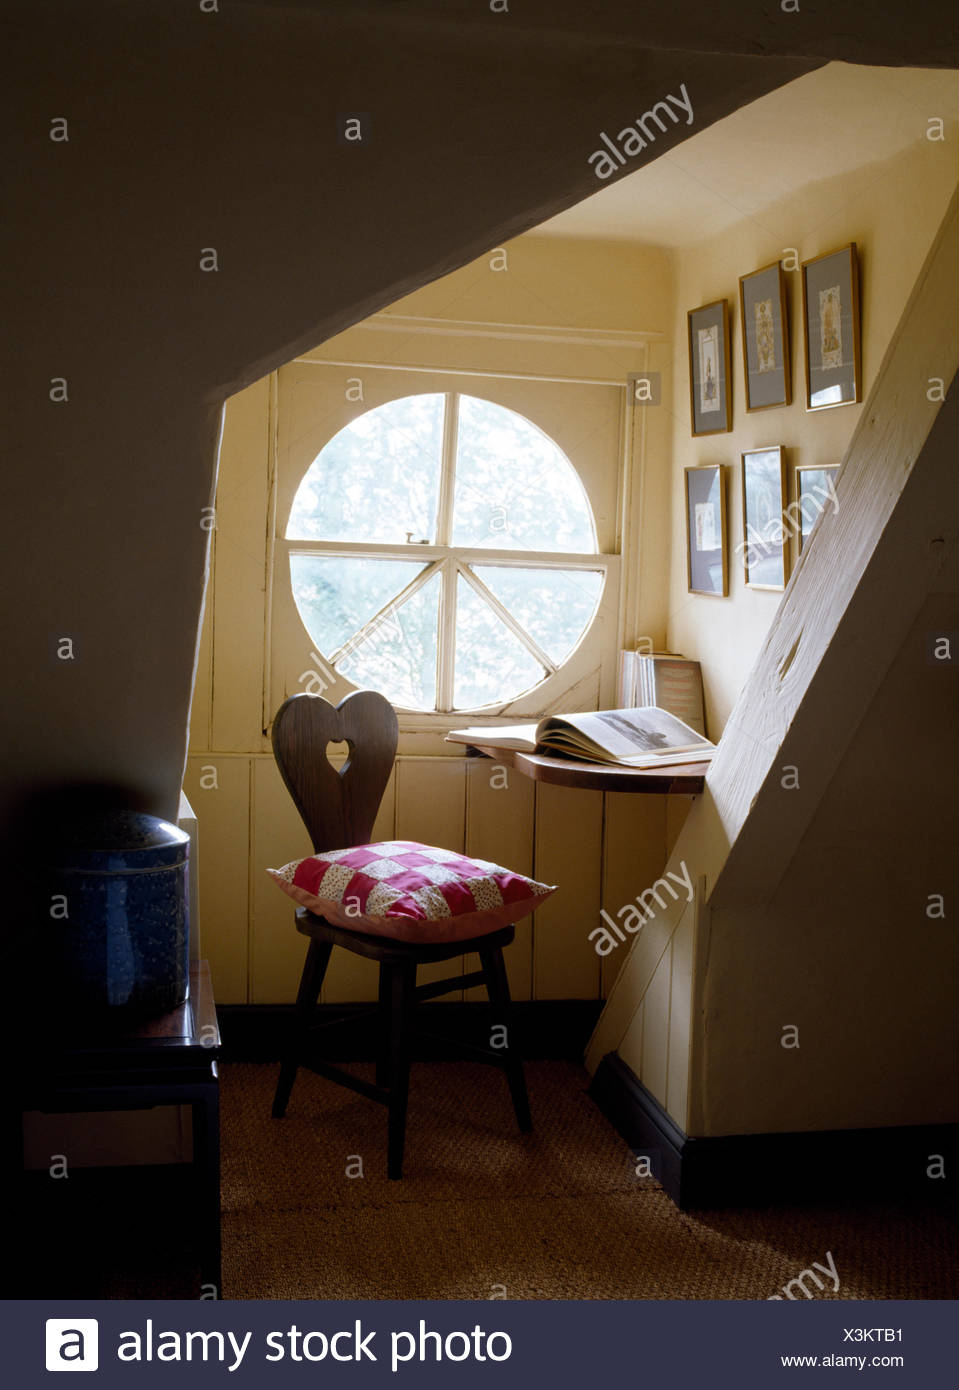 Circular Window In Study Corner Of Attic Bedroom With Patchwork